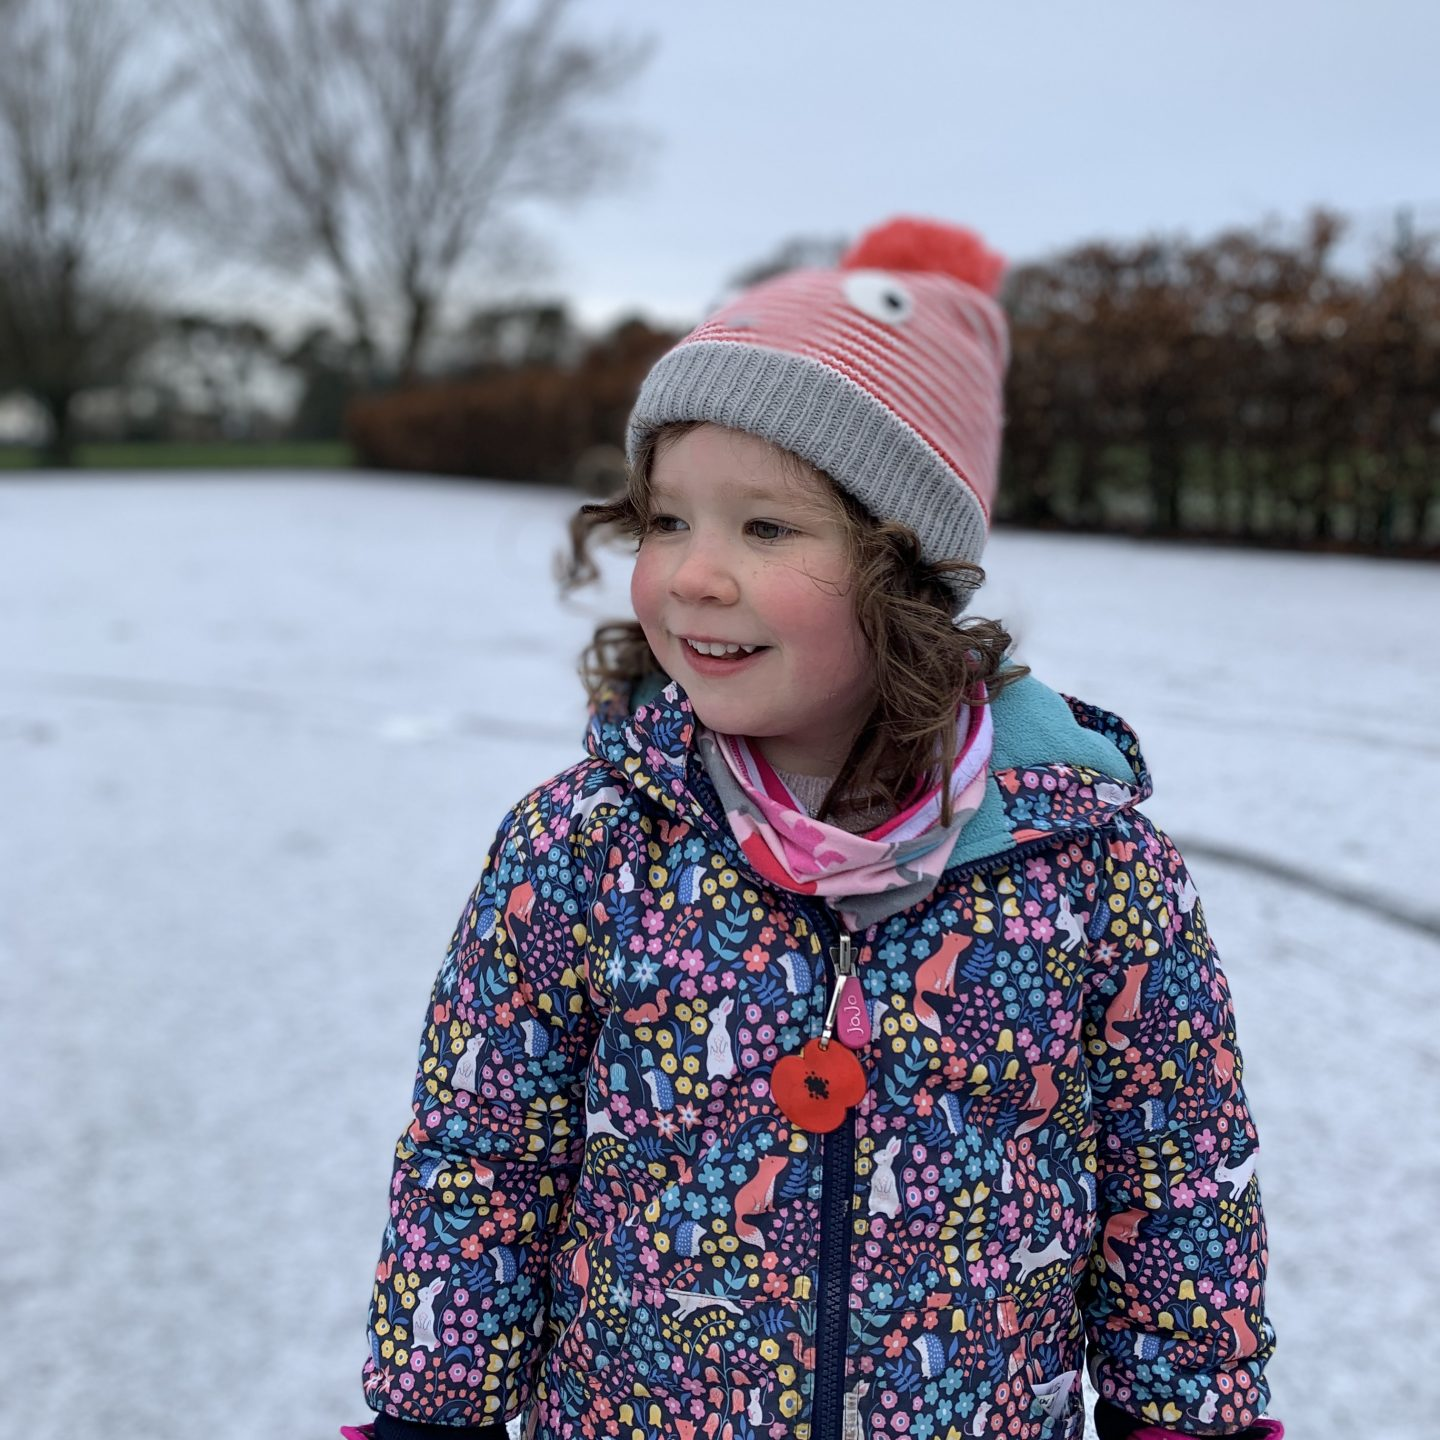 a young girl smiling in the snow